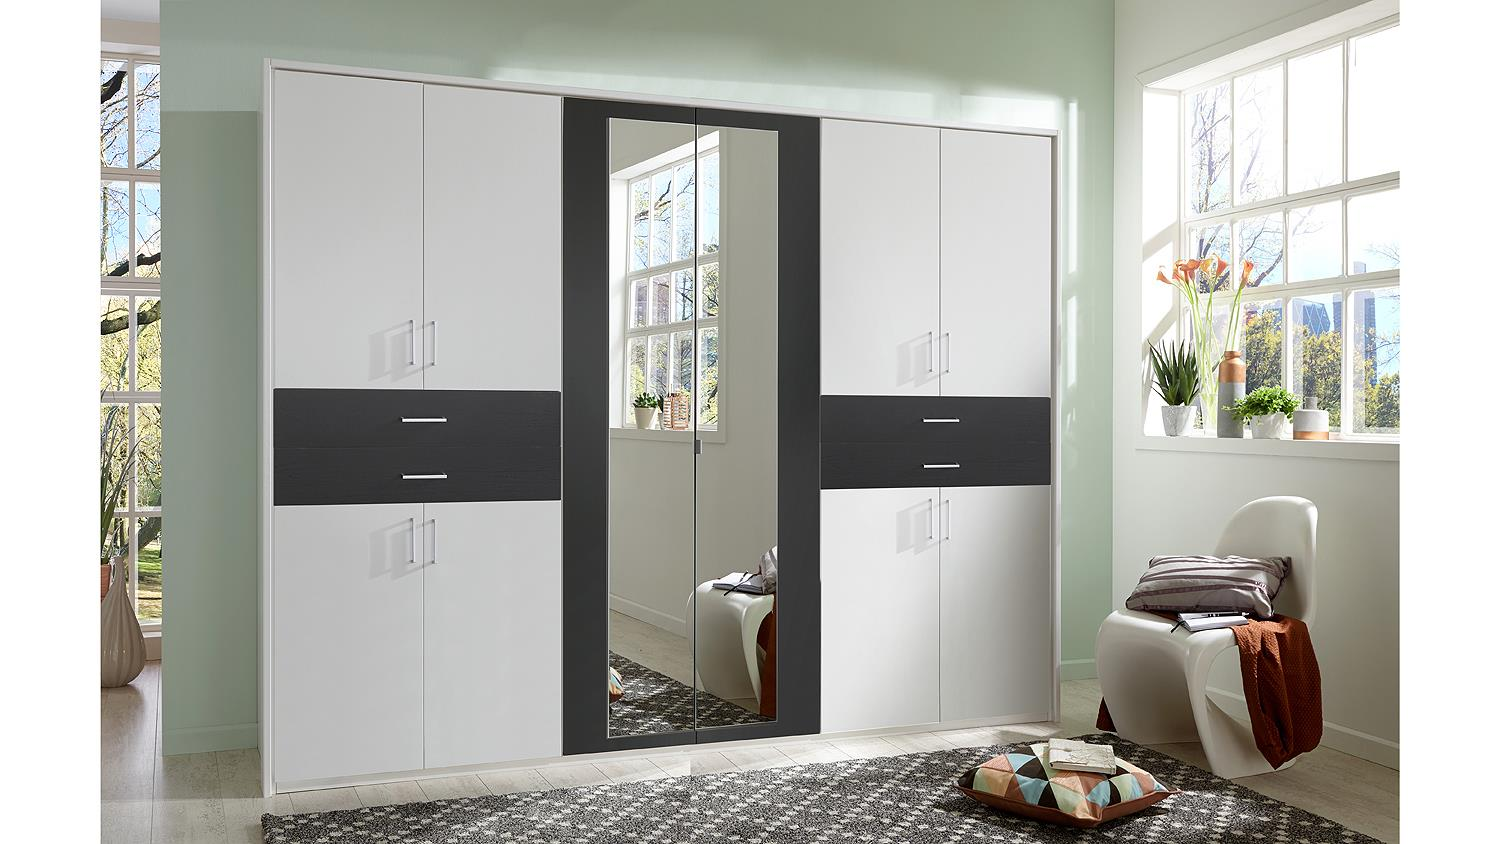 kleiderschrank taiga schrank in wei und anthrazit mit spiegel 270 cm. Black Bedroom Furniture Sets. Home Design Ideas